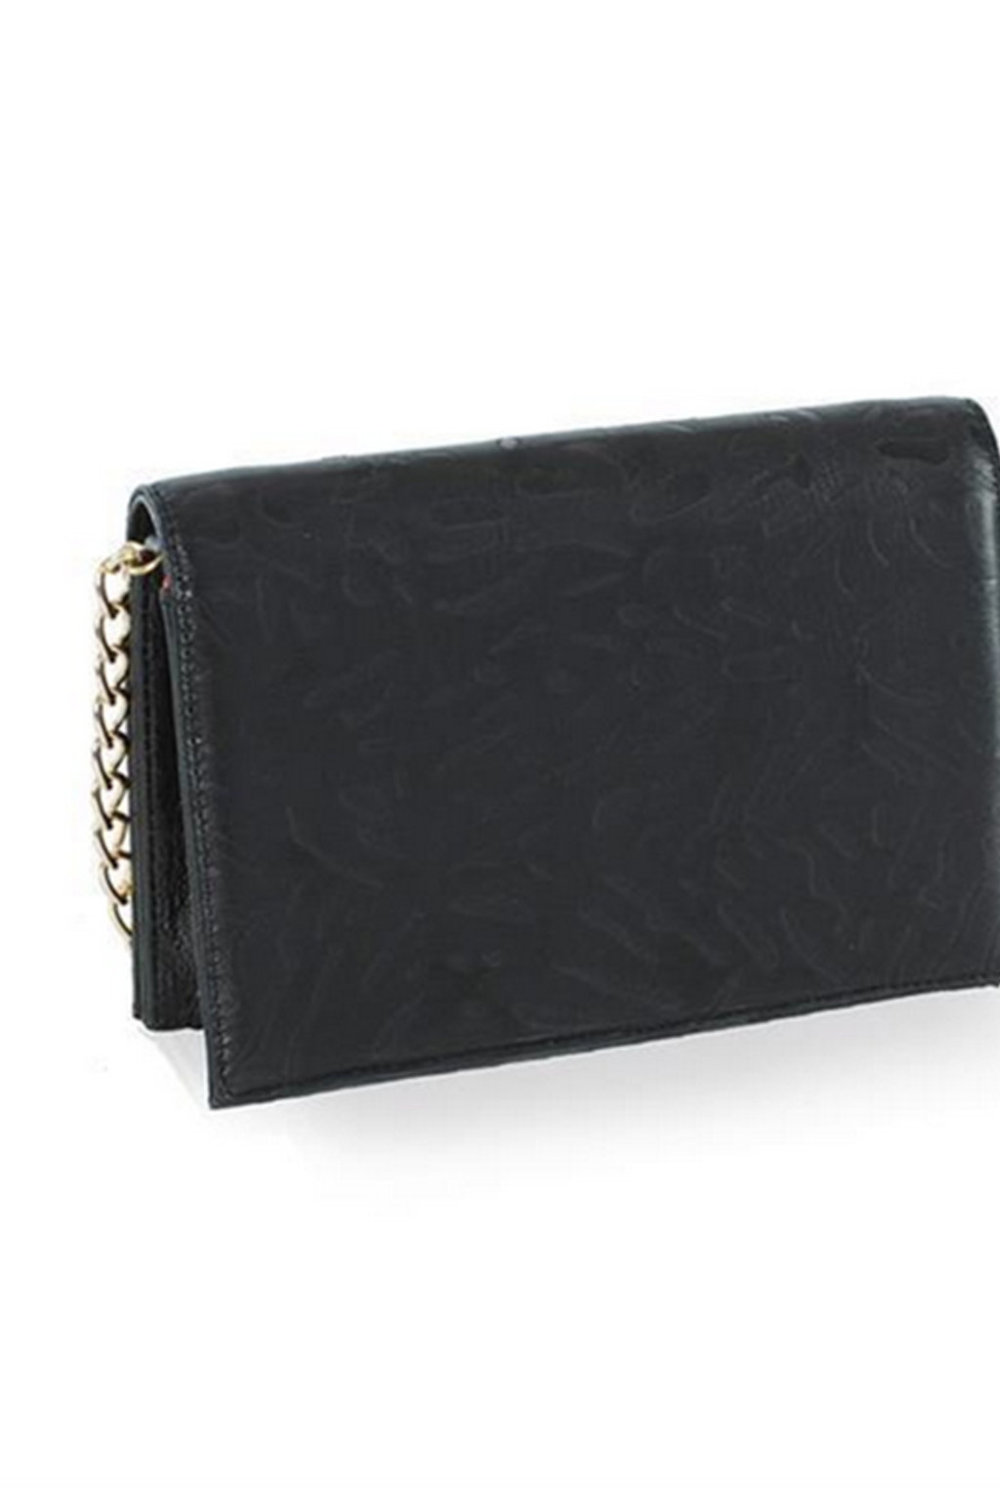 Uptown Black Embossed Leather Clutch - nelou f4484bc4b0